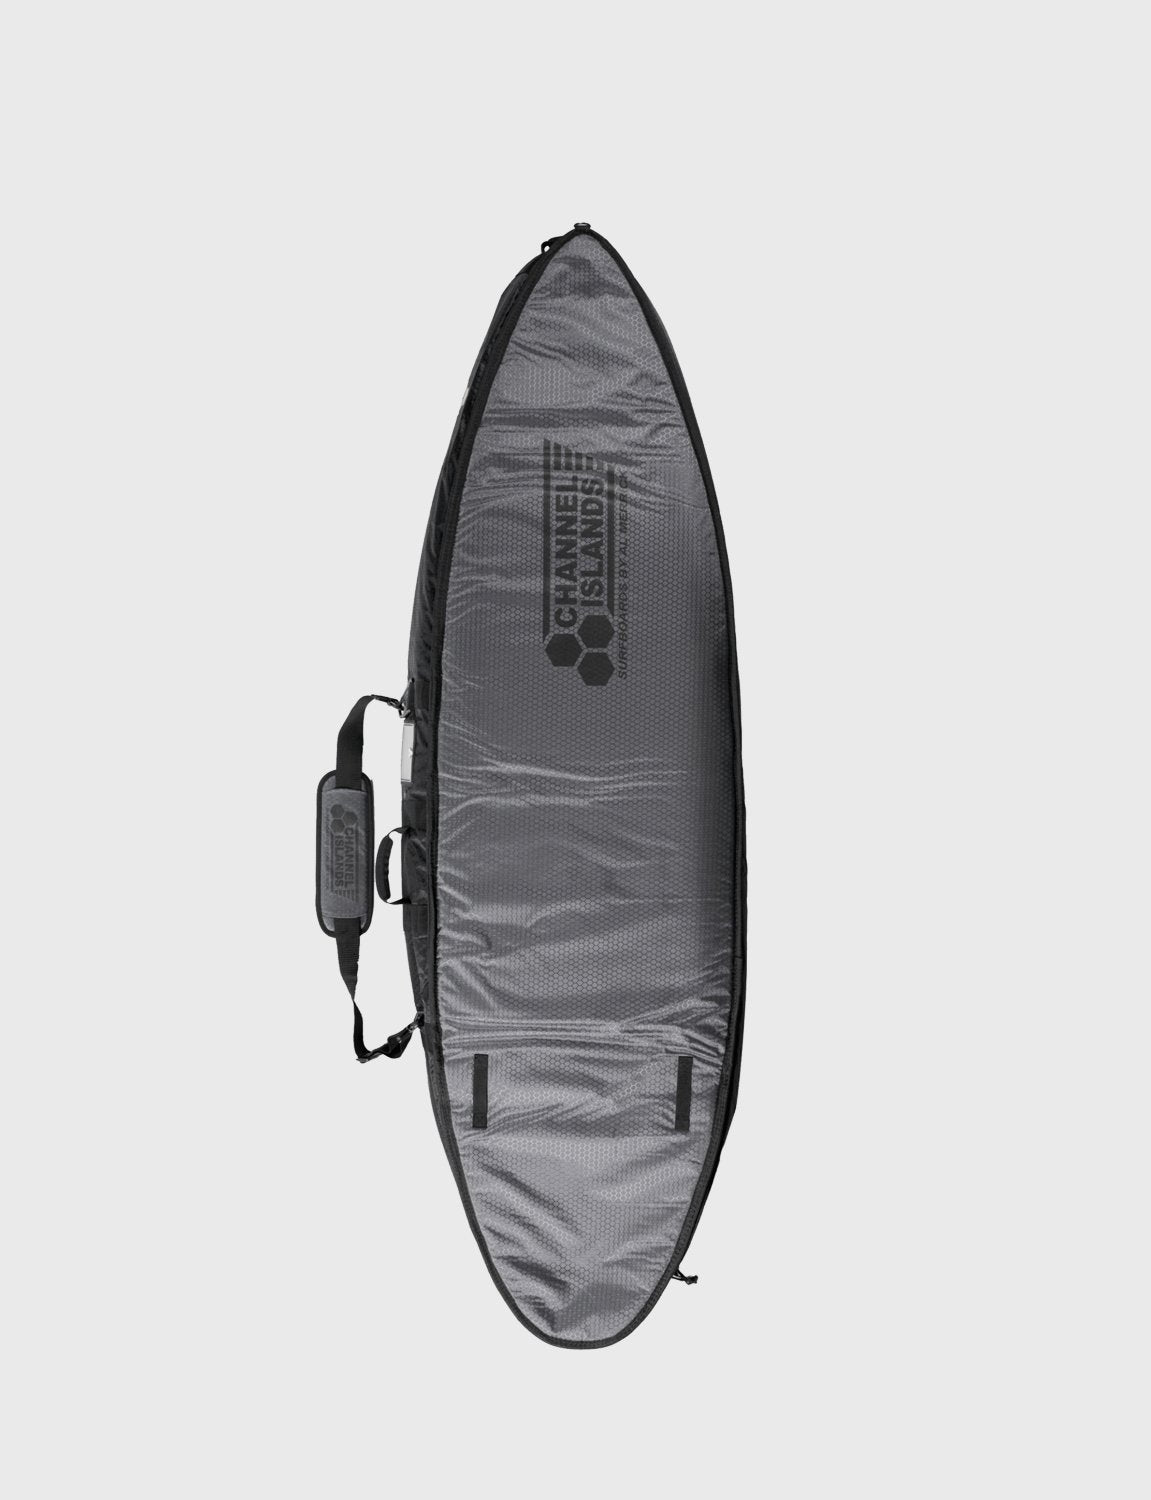 Channel Islands Travel Light CX2 Double Surfboard Bag